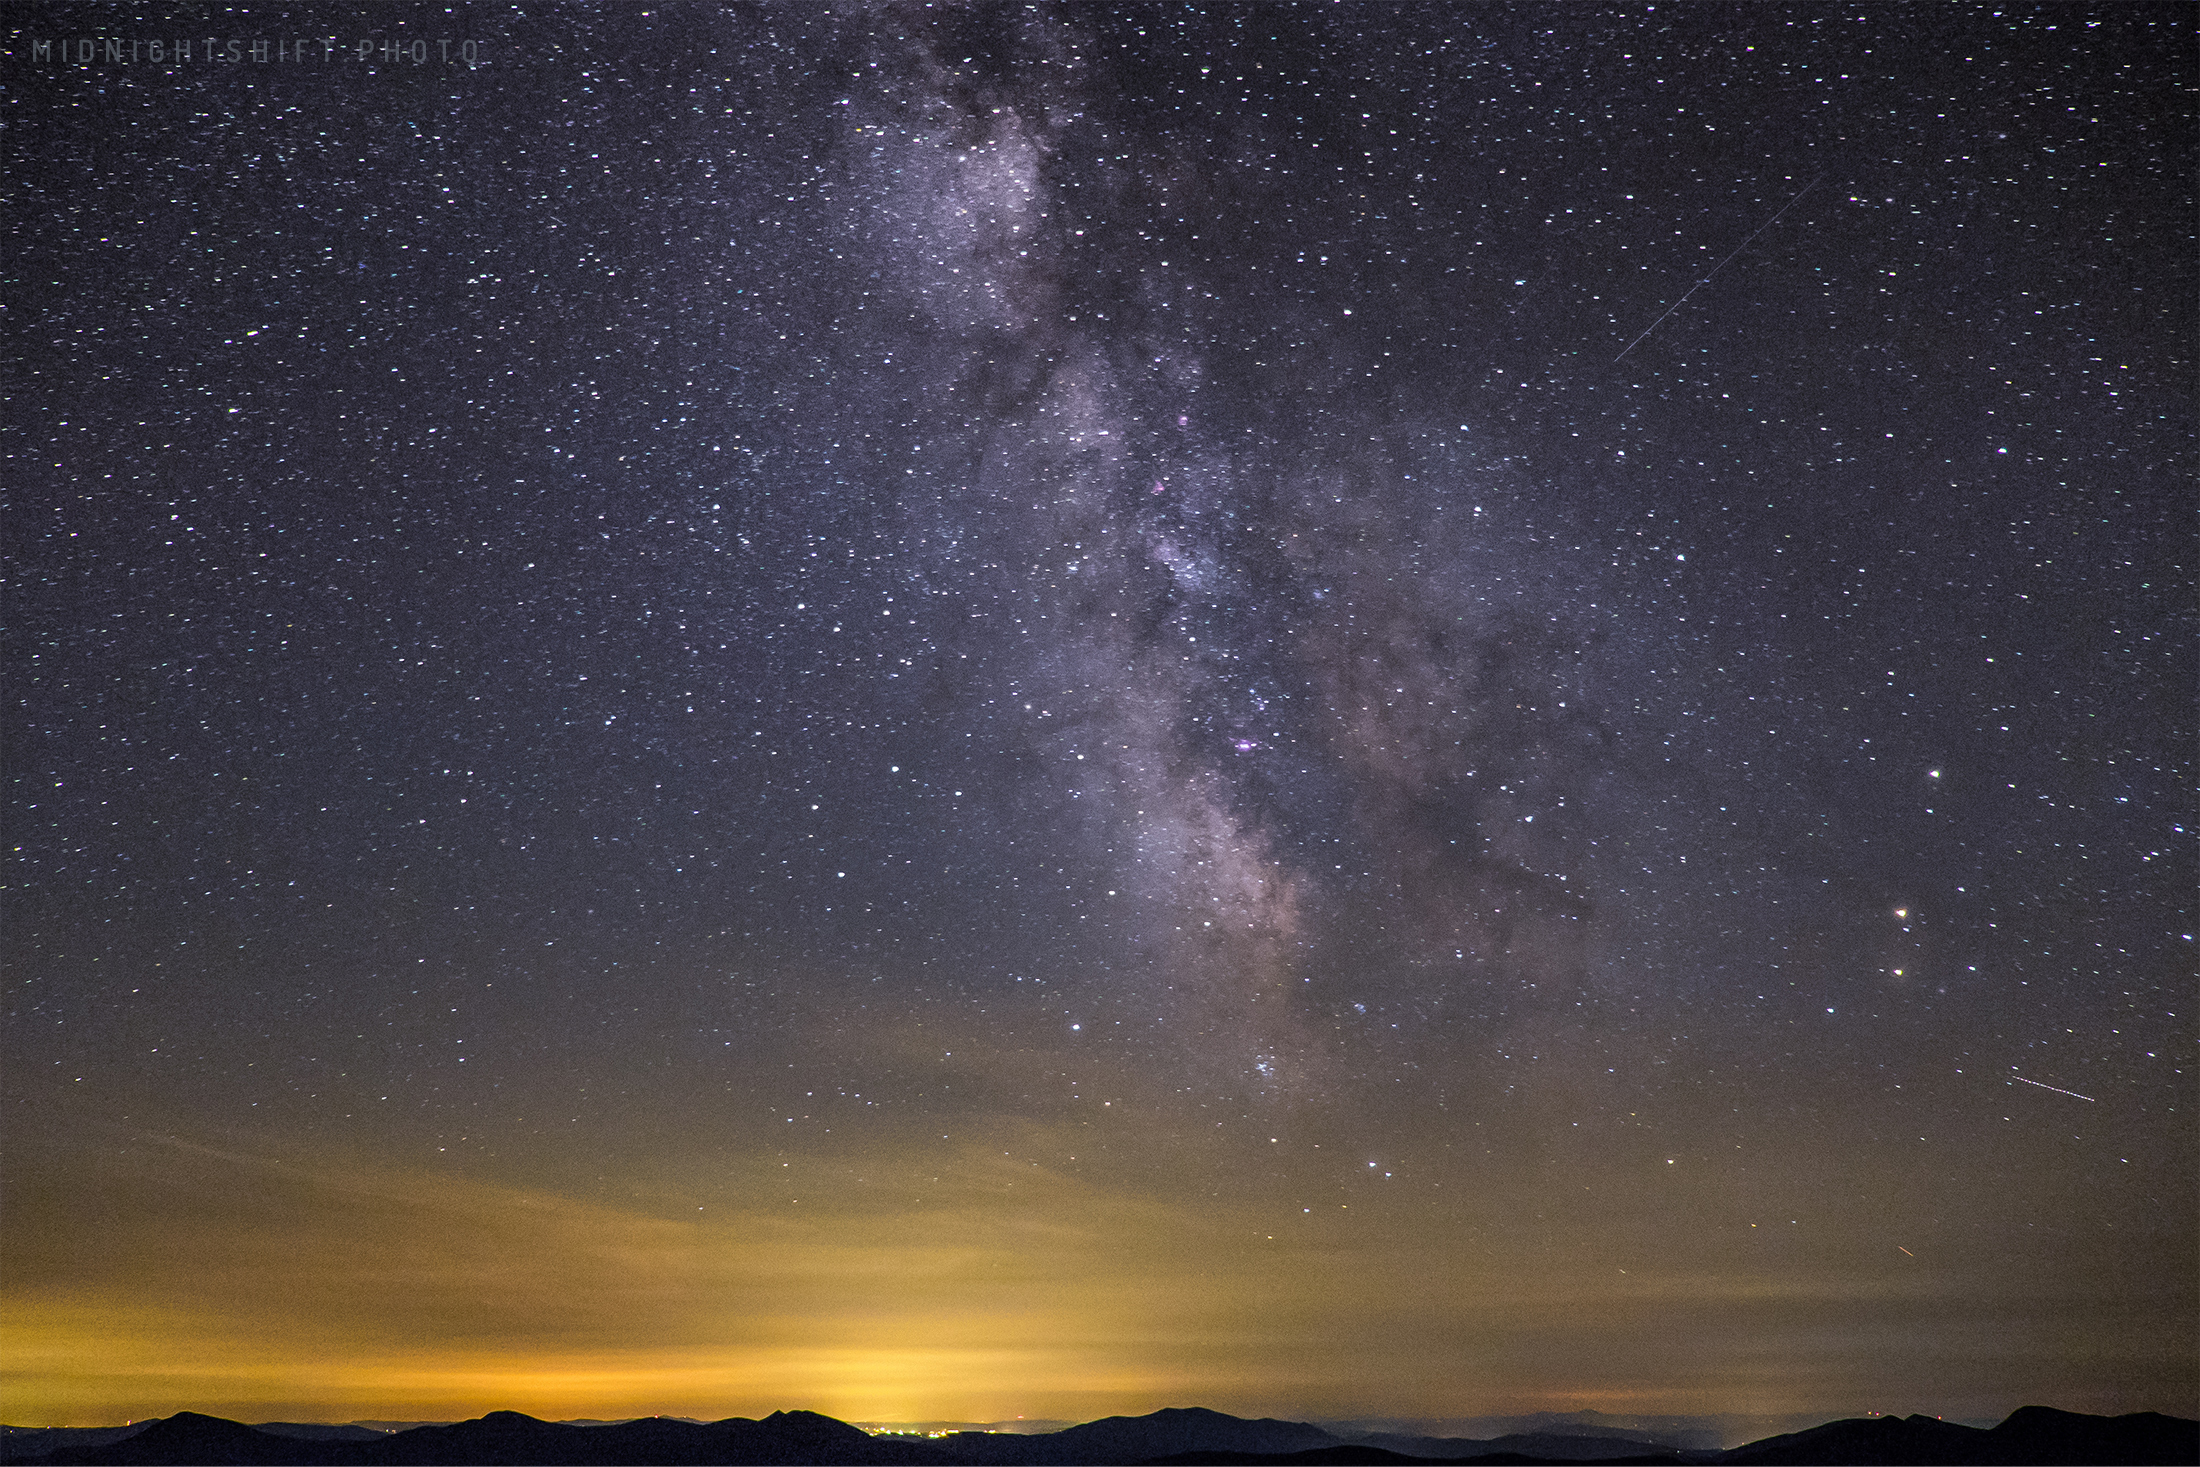 The Milky Way Galaxy can be seen above the lights of Lincoln New Hampshire from the fire tower.